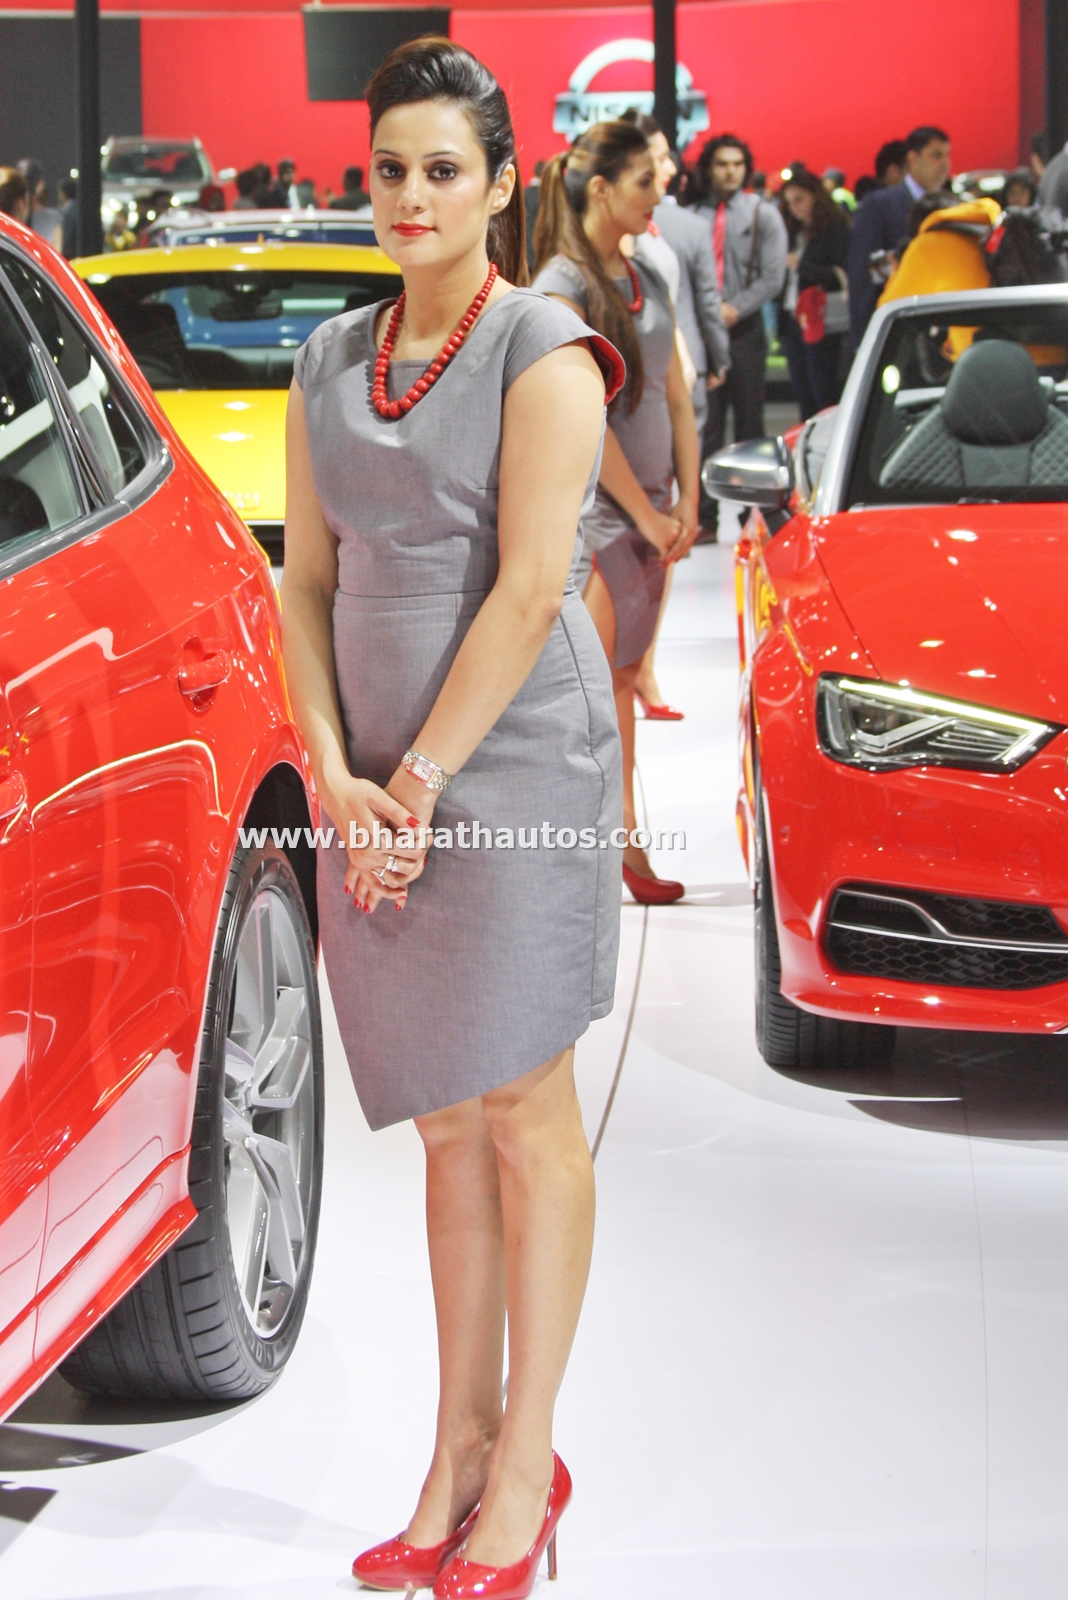 Auto Expo, Inc - Used Cars, New Cars, Reviews, Photos Hot models in auto expo photos